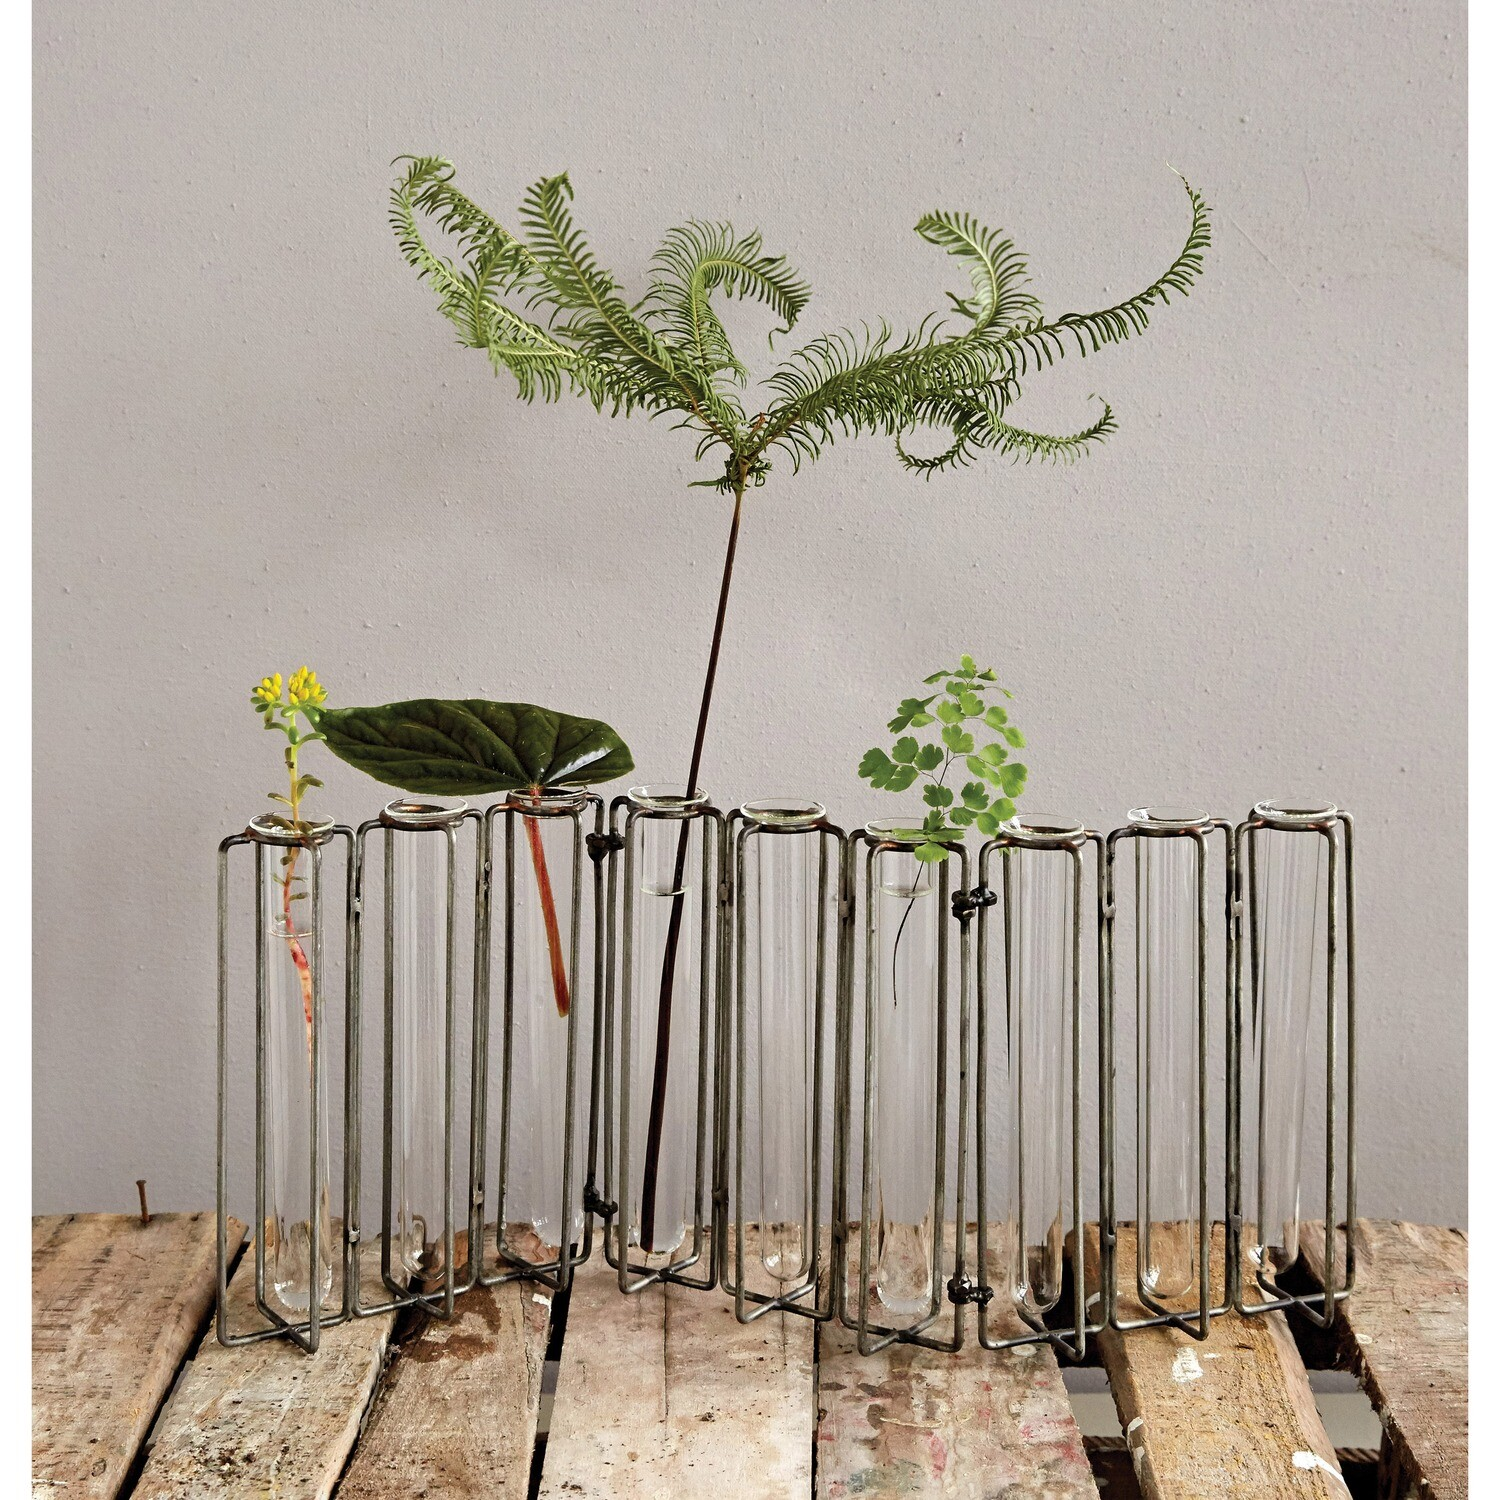 Test Tube Propagation Vase With Black Stand